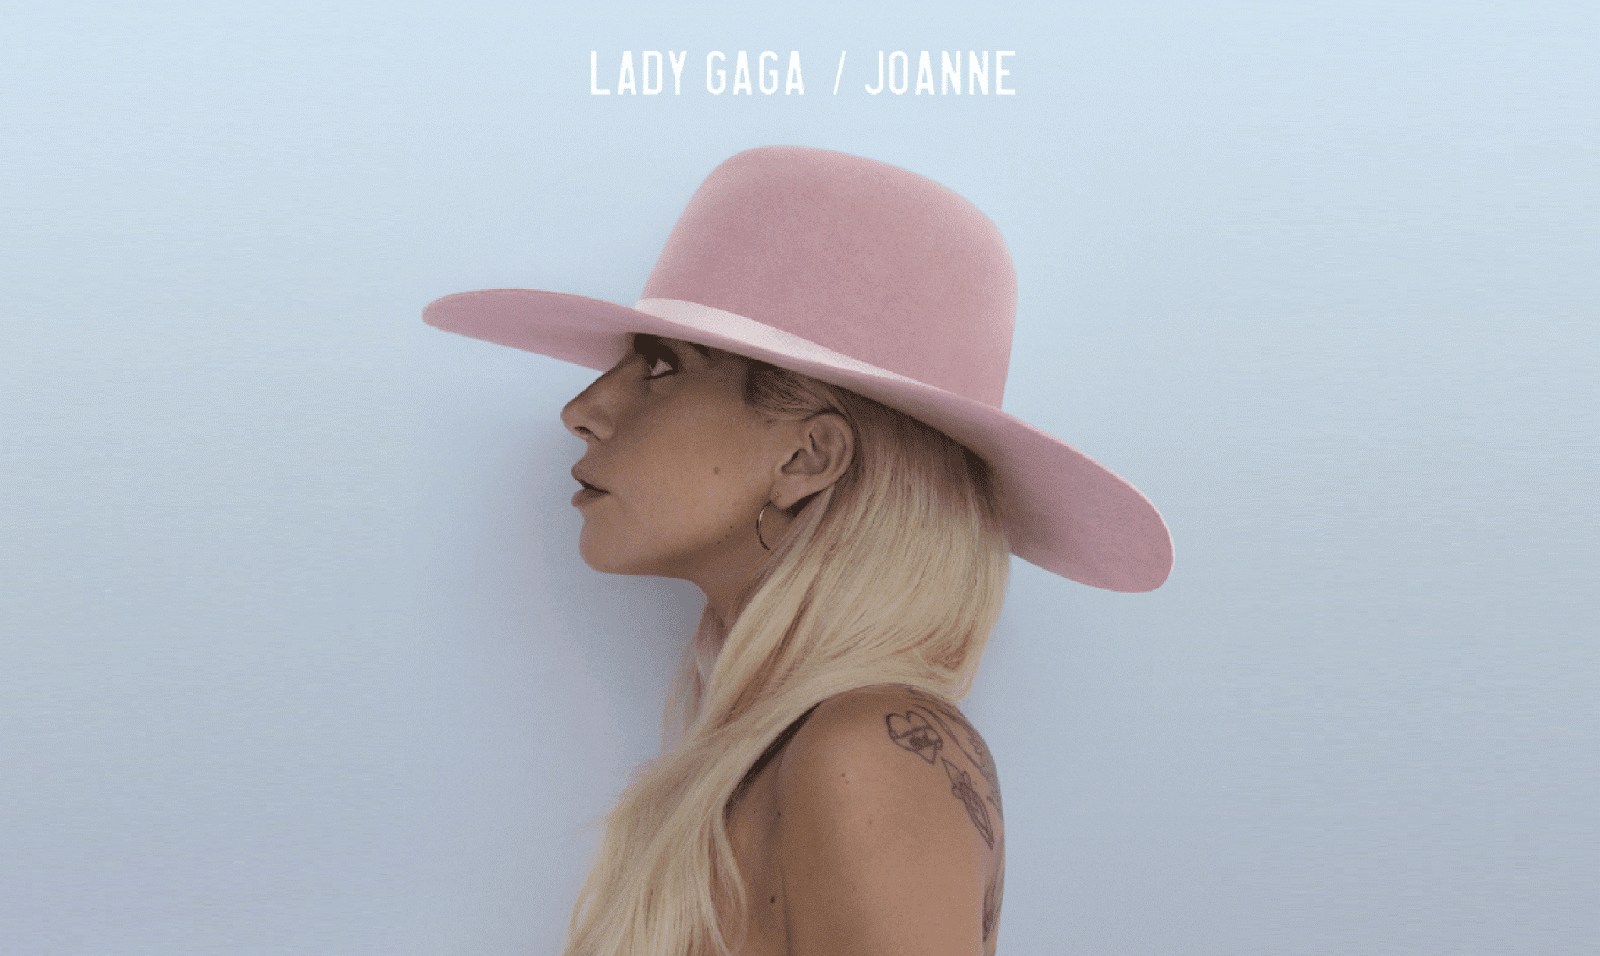 Image result for lady gaga joanne cover